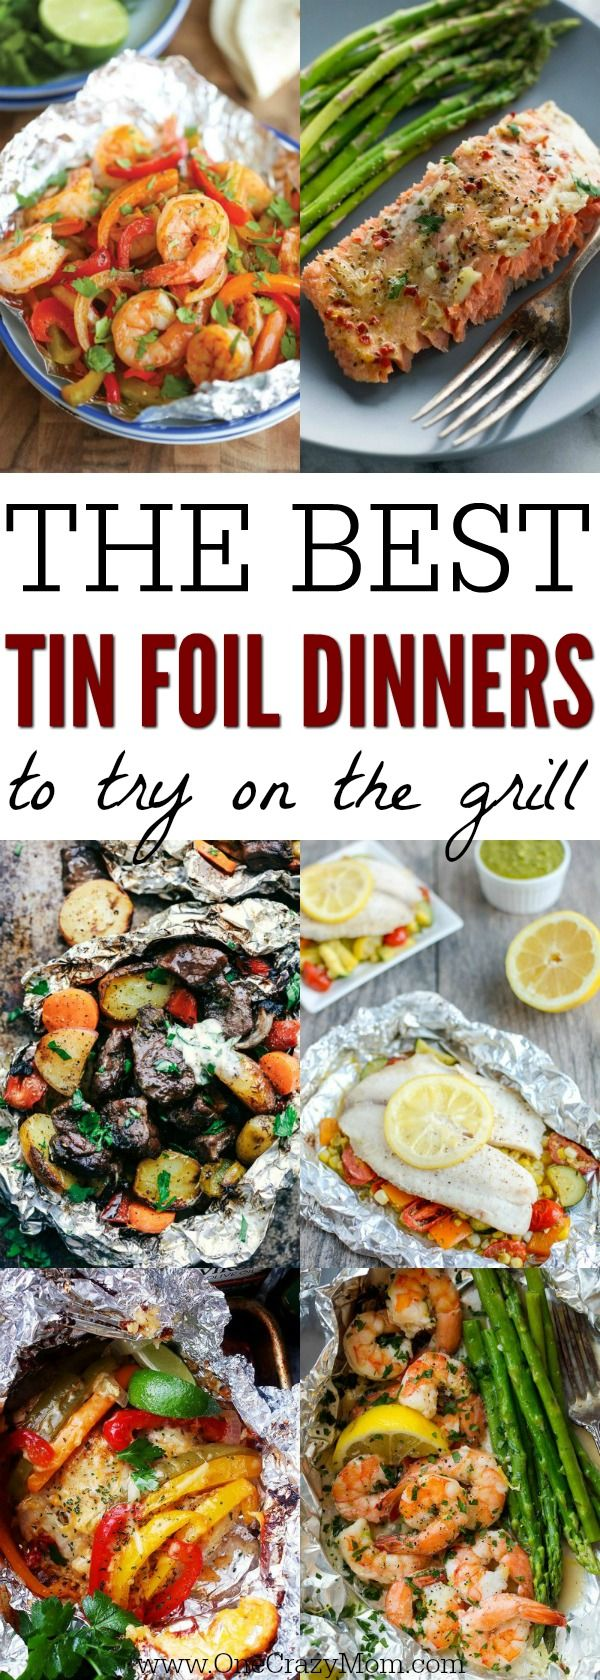 We have the best tin foil dinners for you to try! These foil pack meals make dinner time simple. Clean up is a breeze with these foil packet recipes. These are truly the best foil packet dinner ideas. Try these tasty foil dinners today!